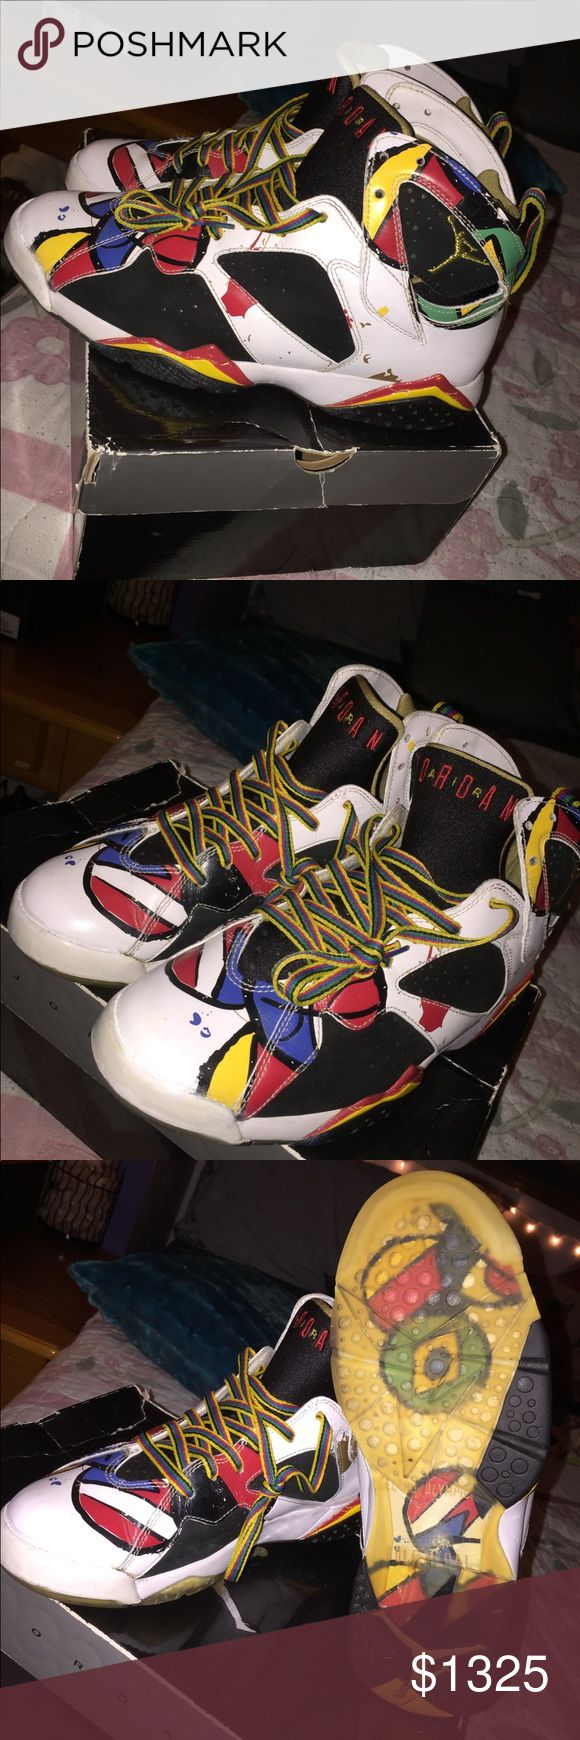 Jordan 7 Miro Olympics Highly Collectible . No og box or laces . Authentic. Air Jordan Shoes Sneakers